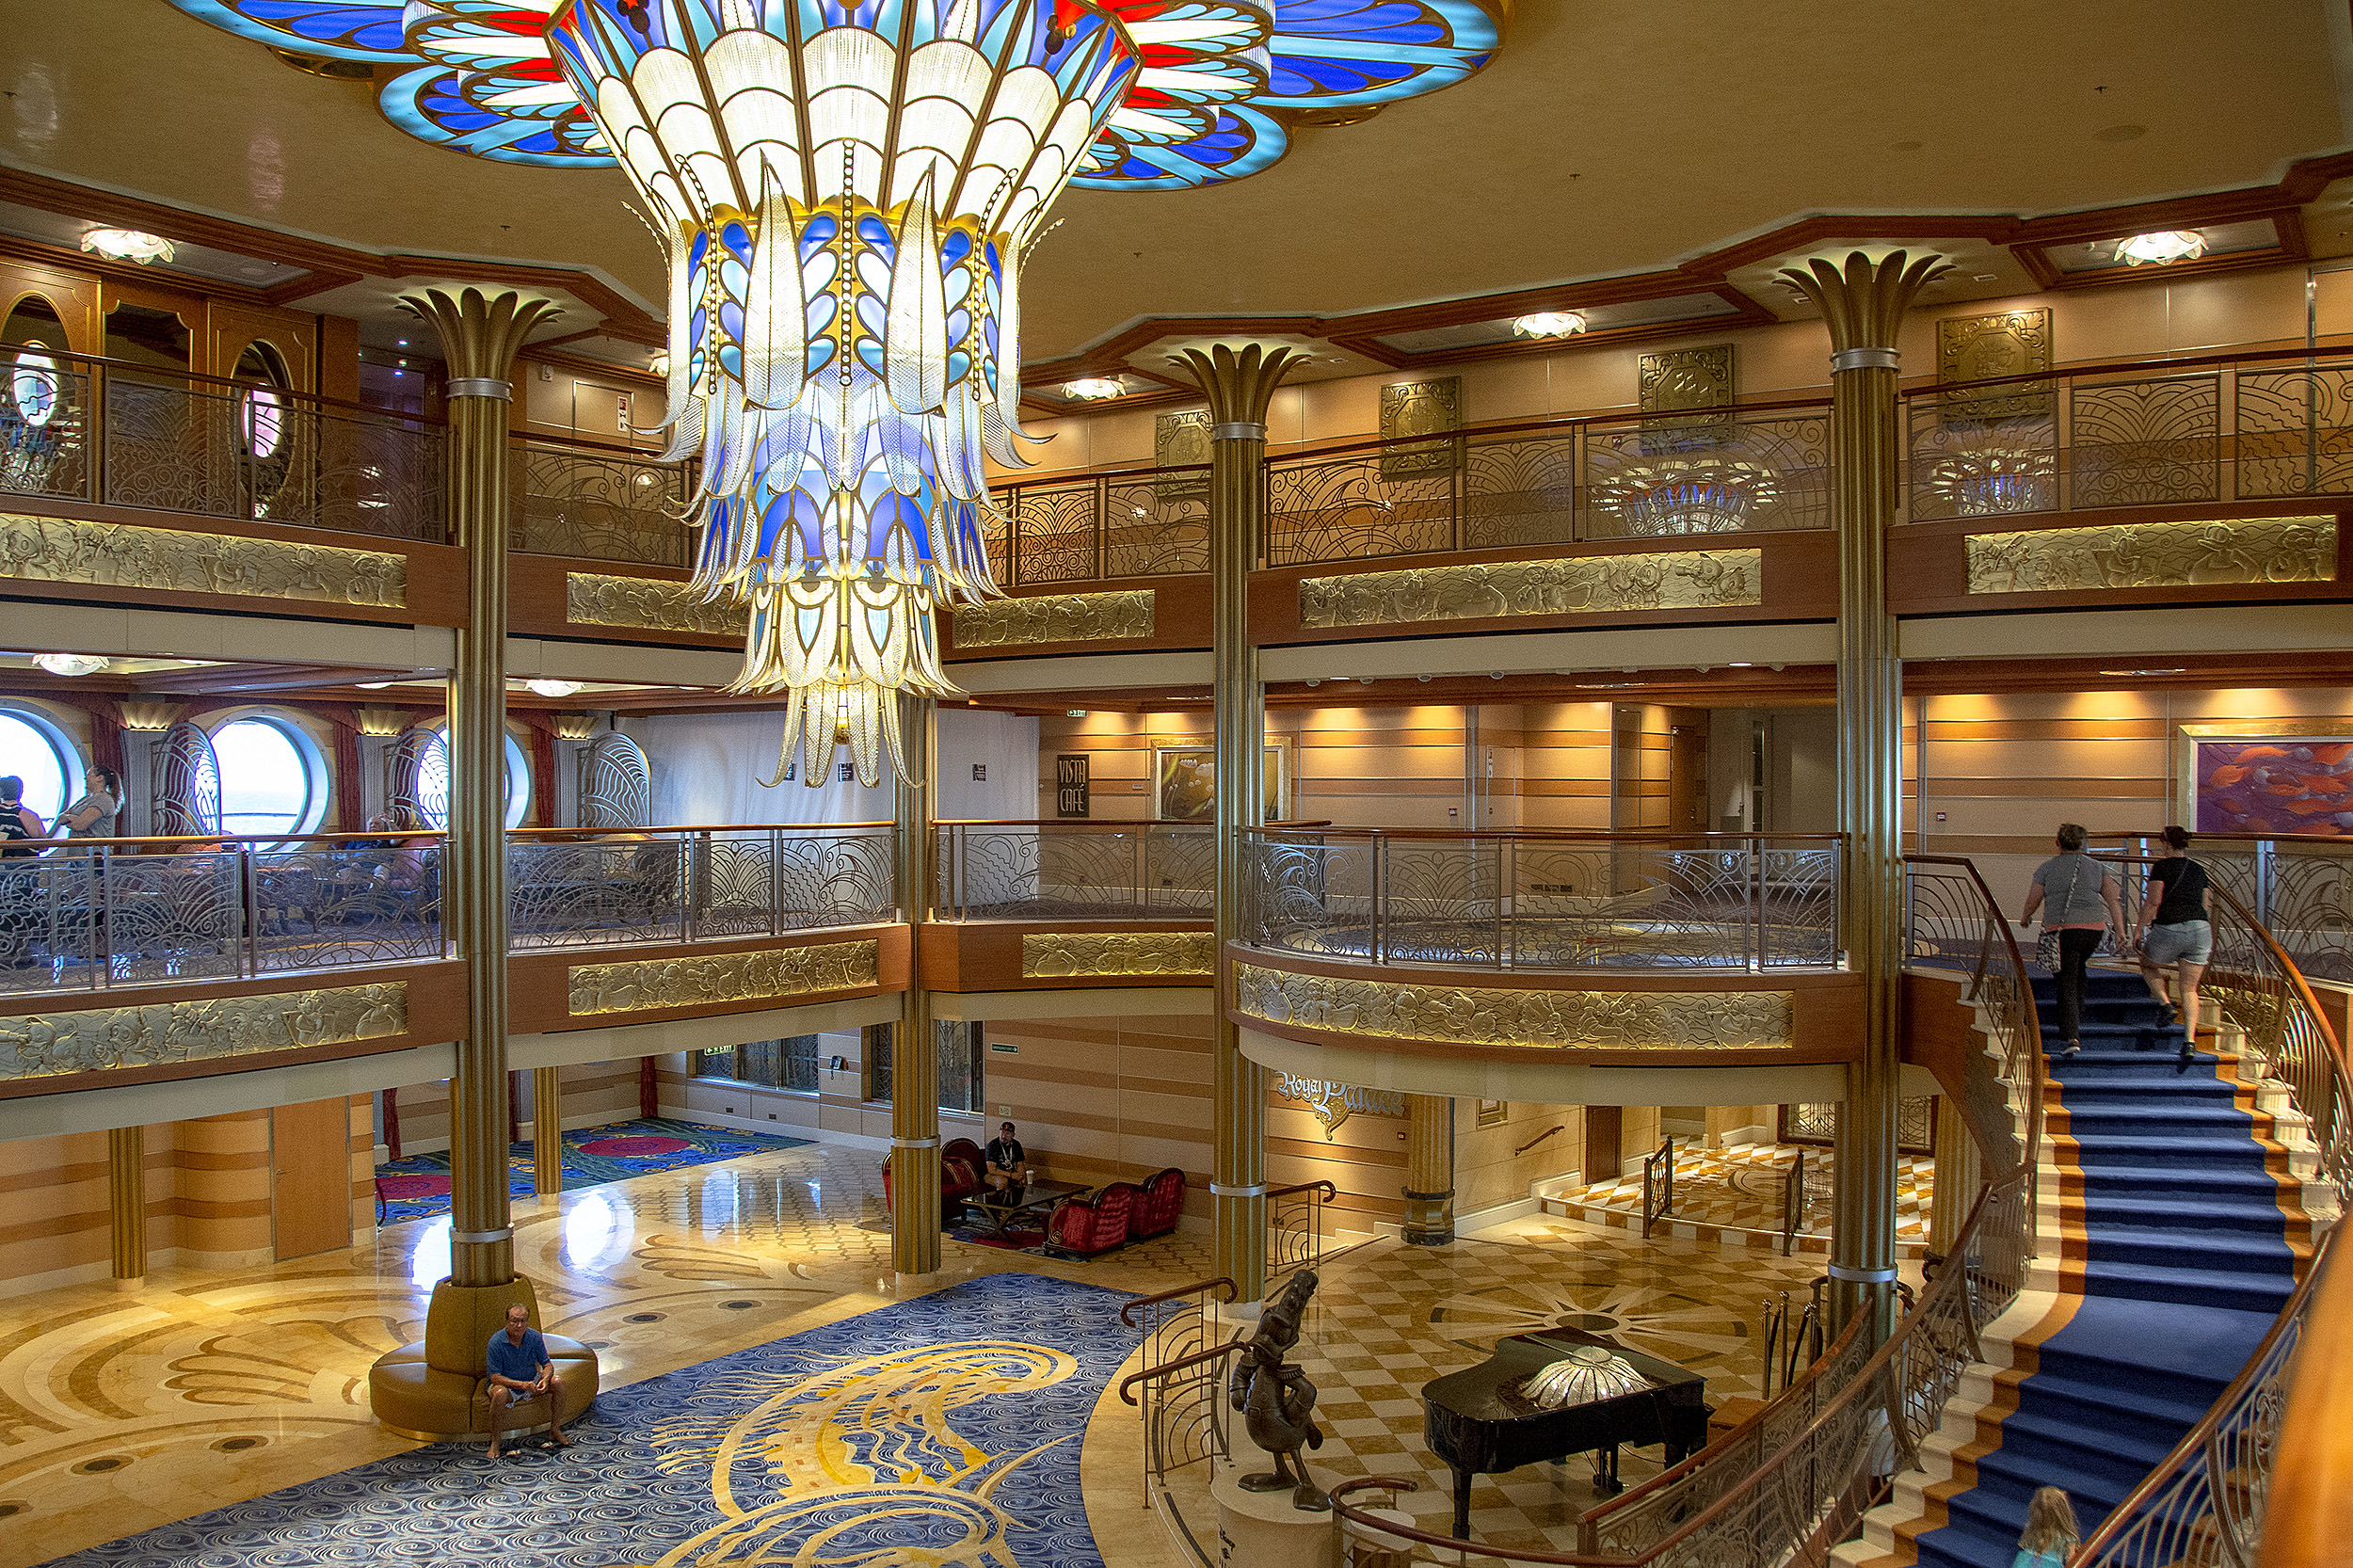 atrium disney dream disneykryssning